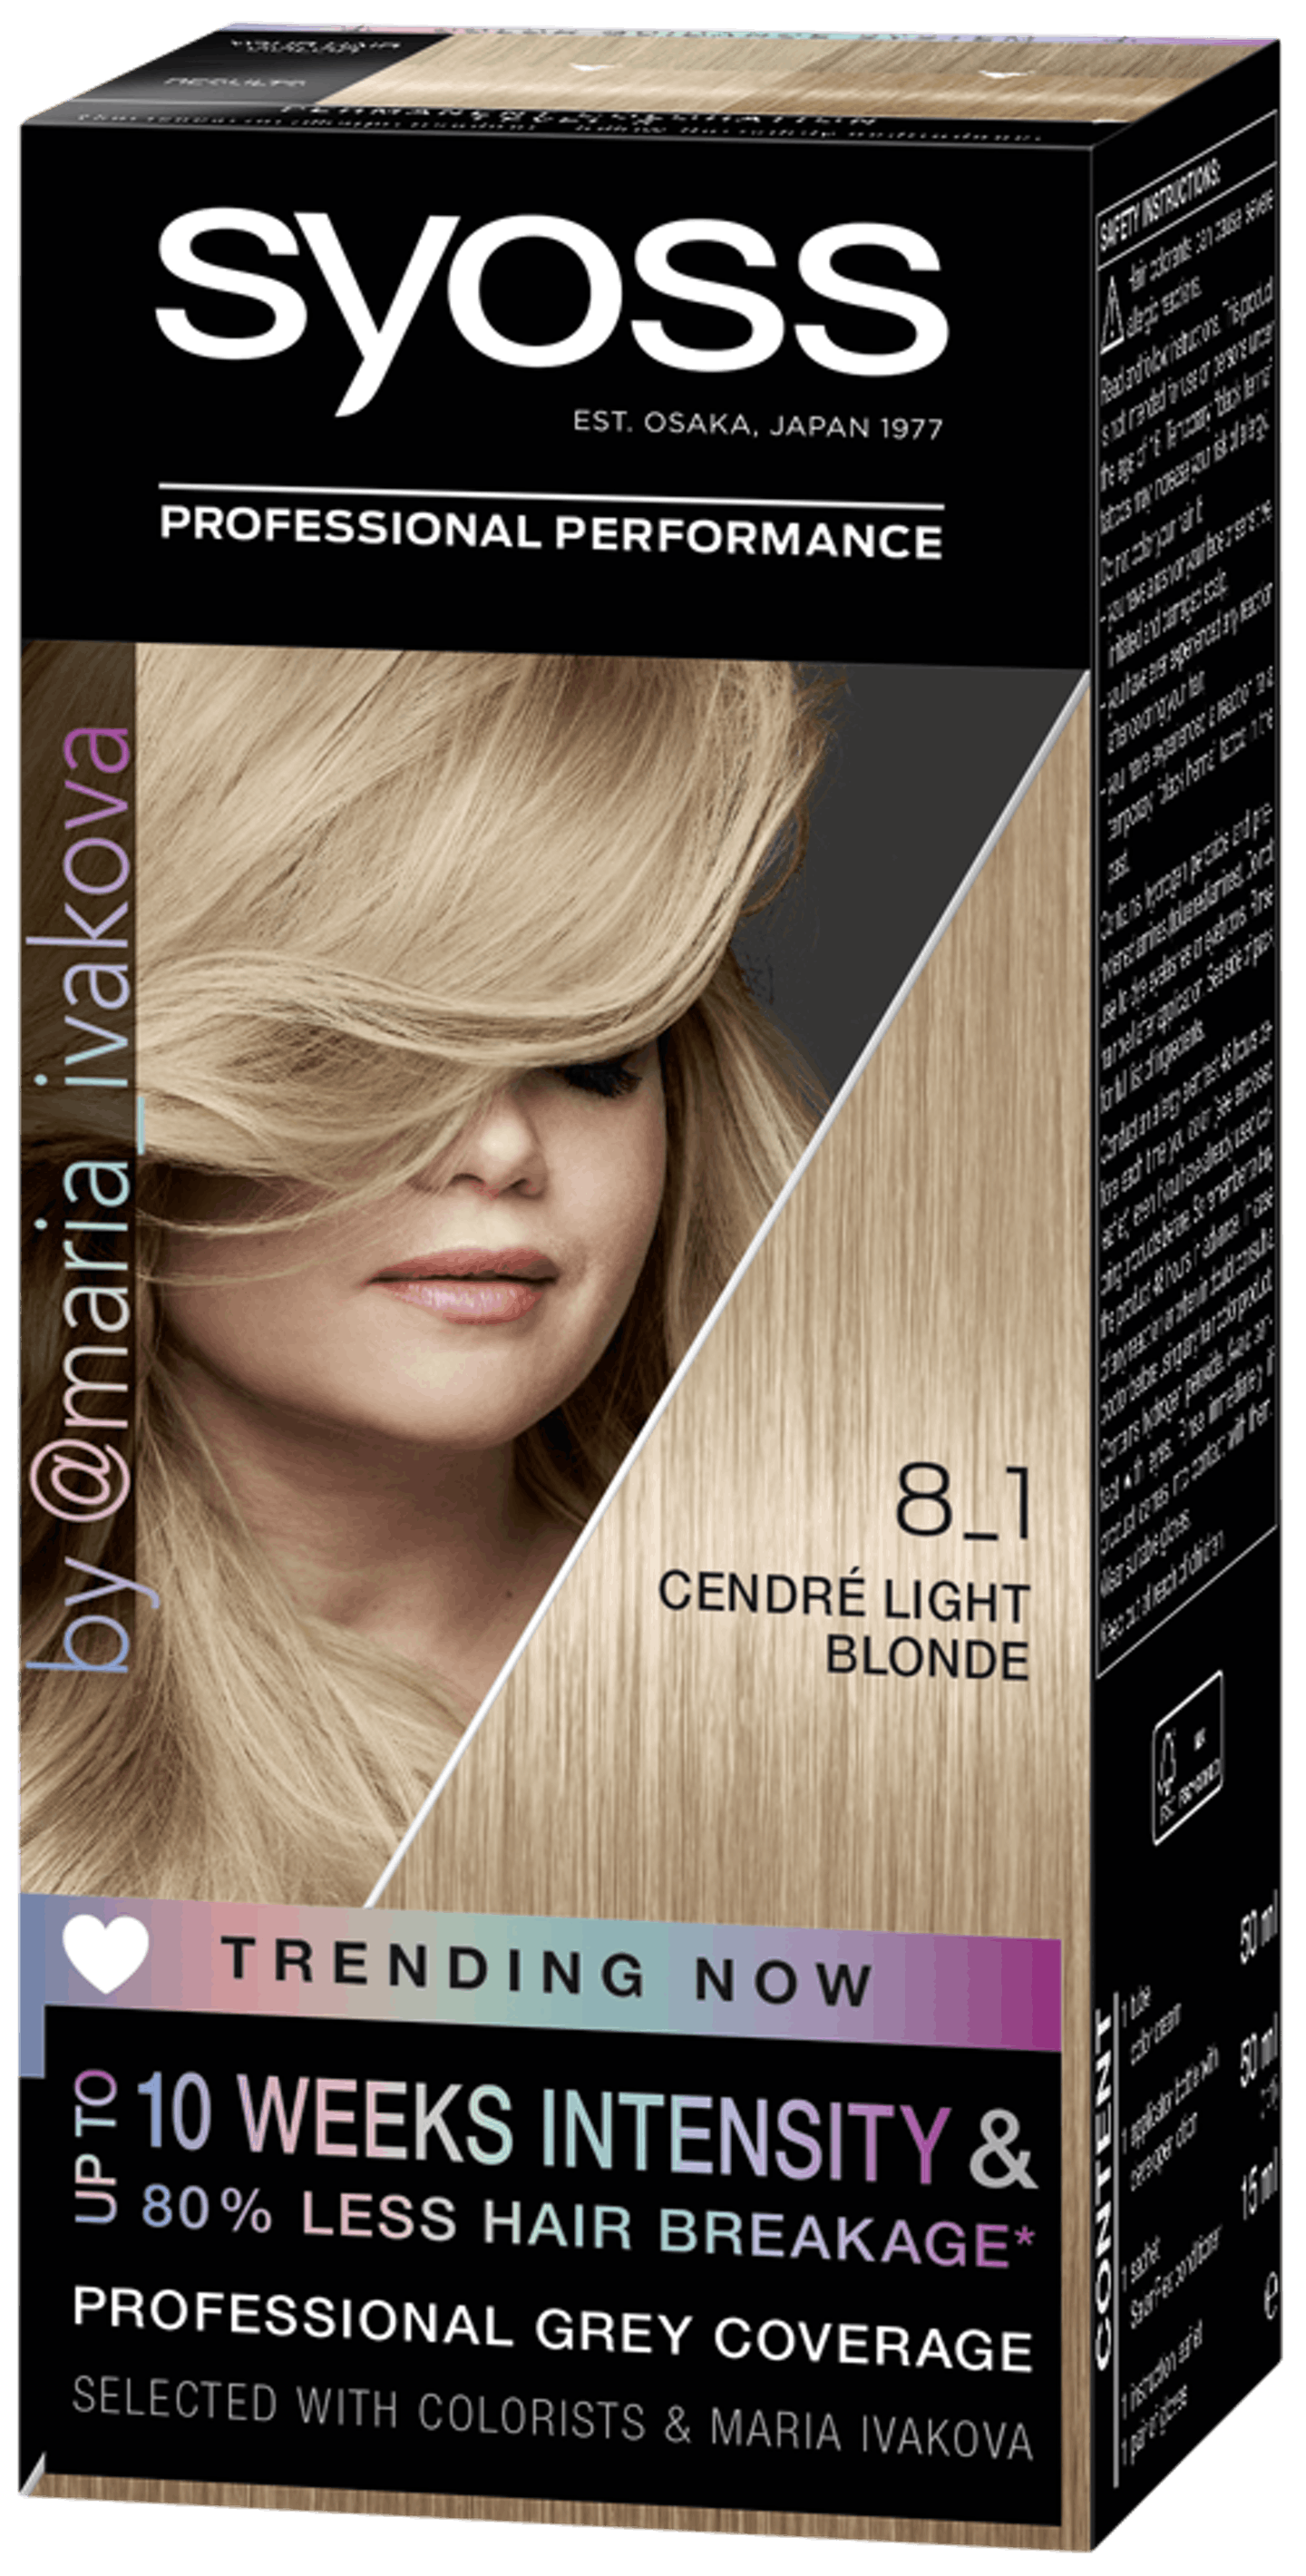 Cendré Light Blonde 8_1